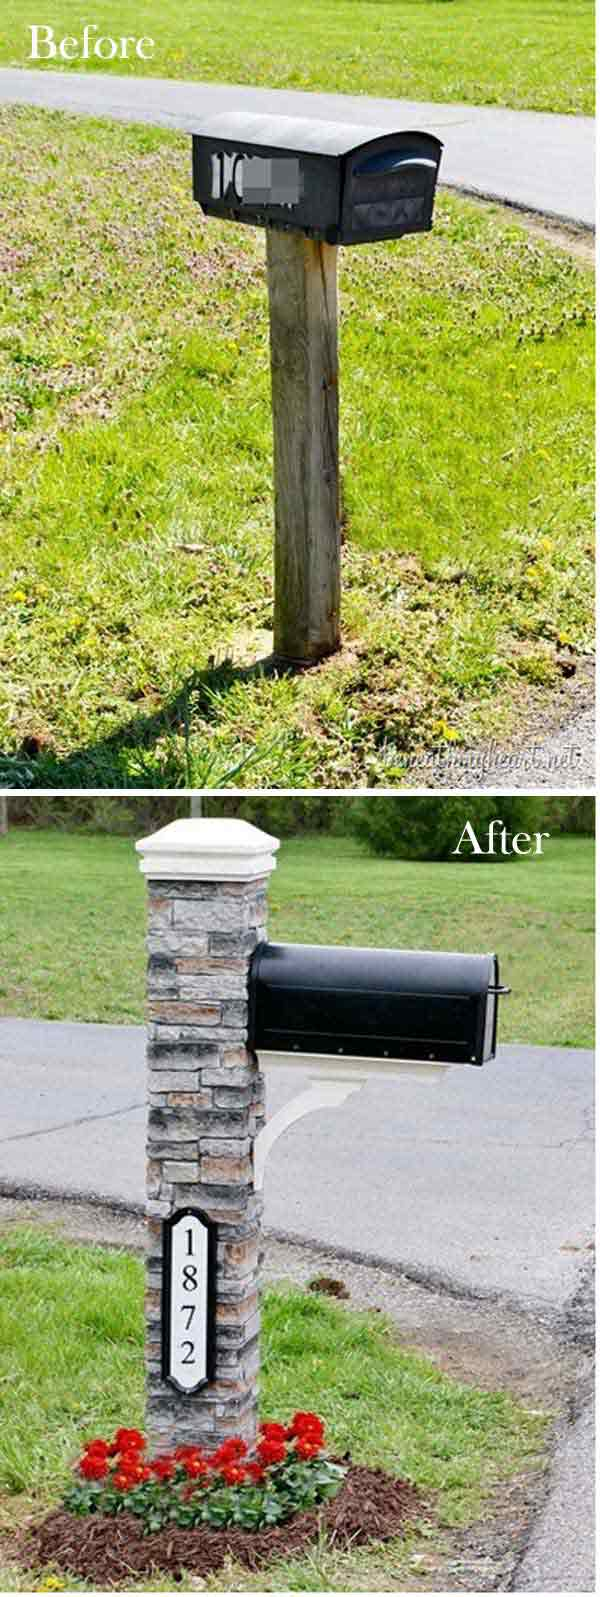 Curb-Appeal-before-and-after-3-2